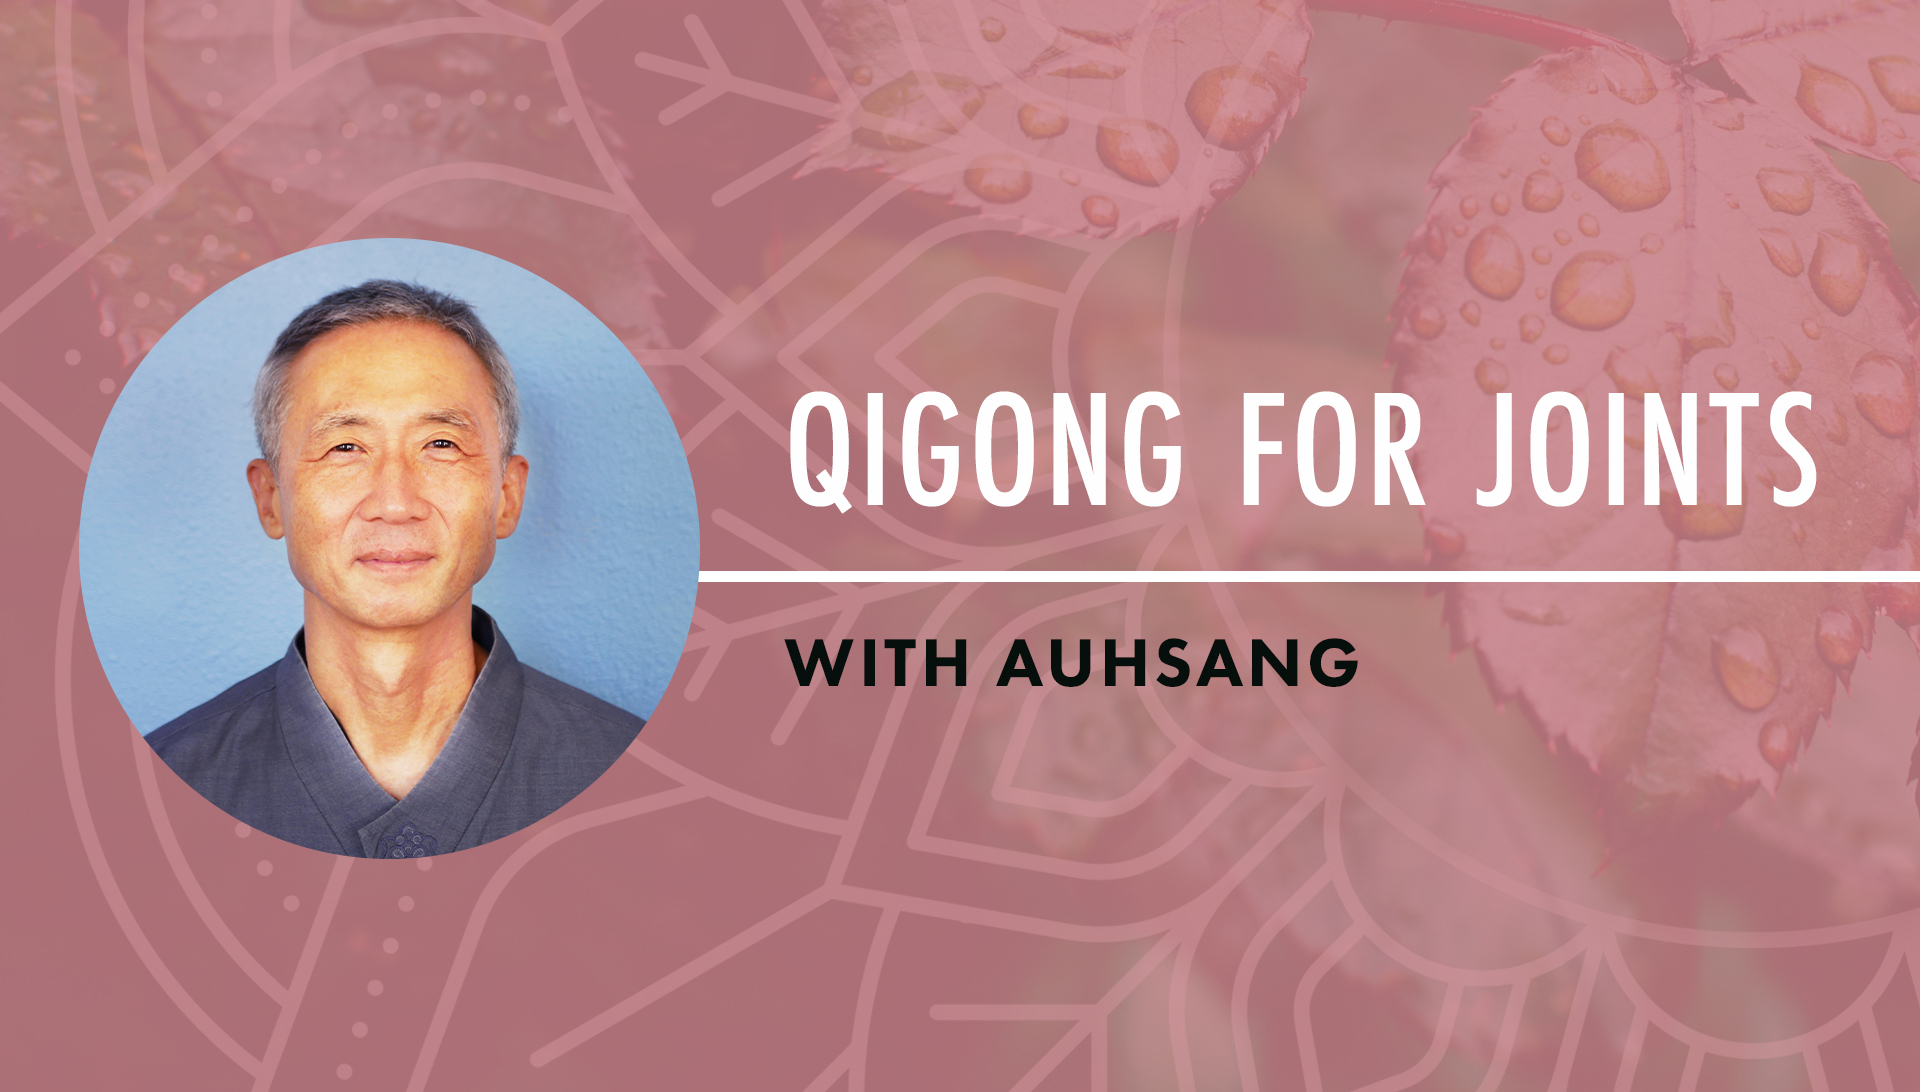 Qigong for Joints